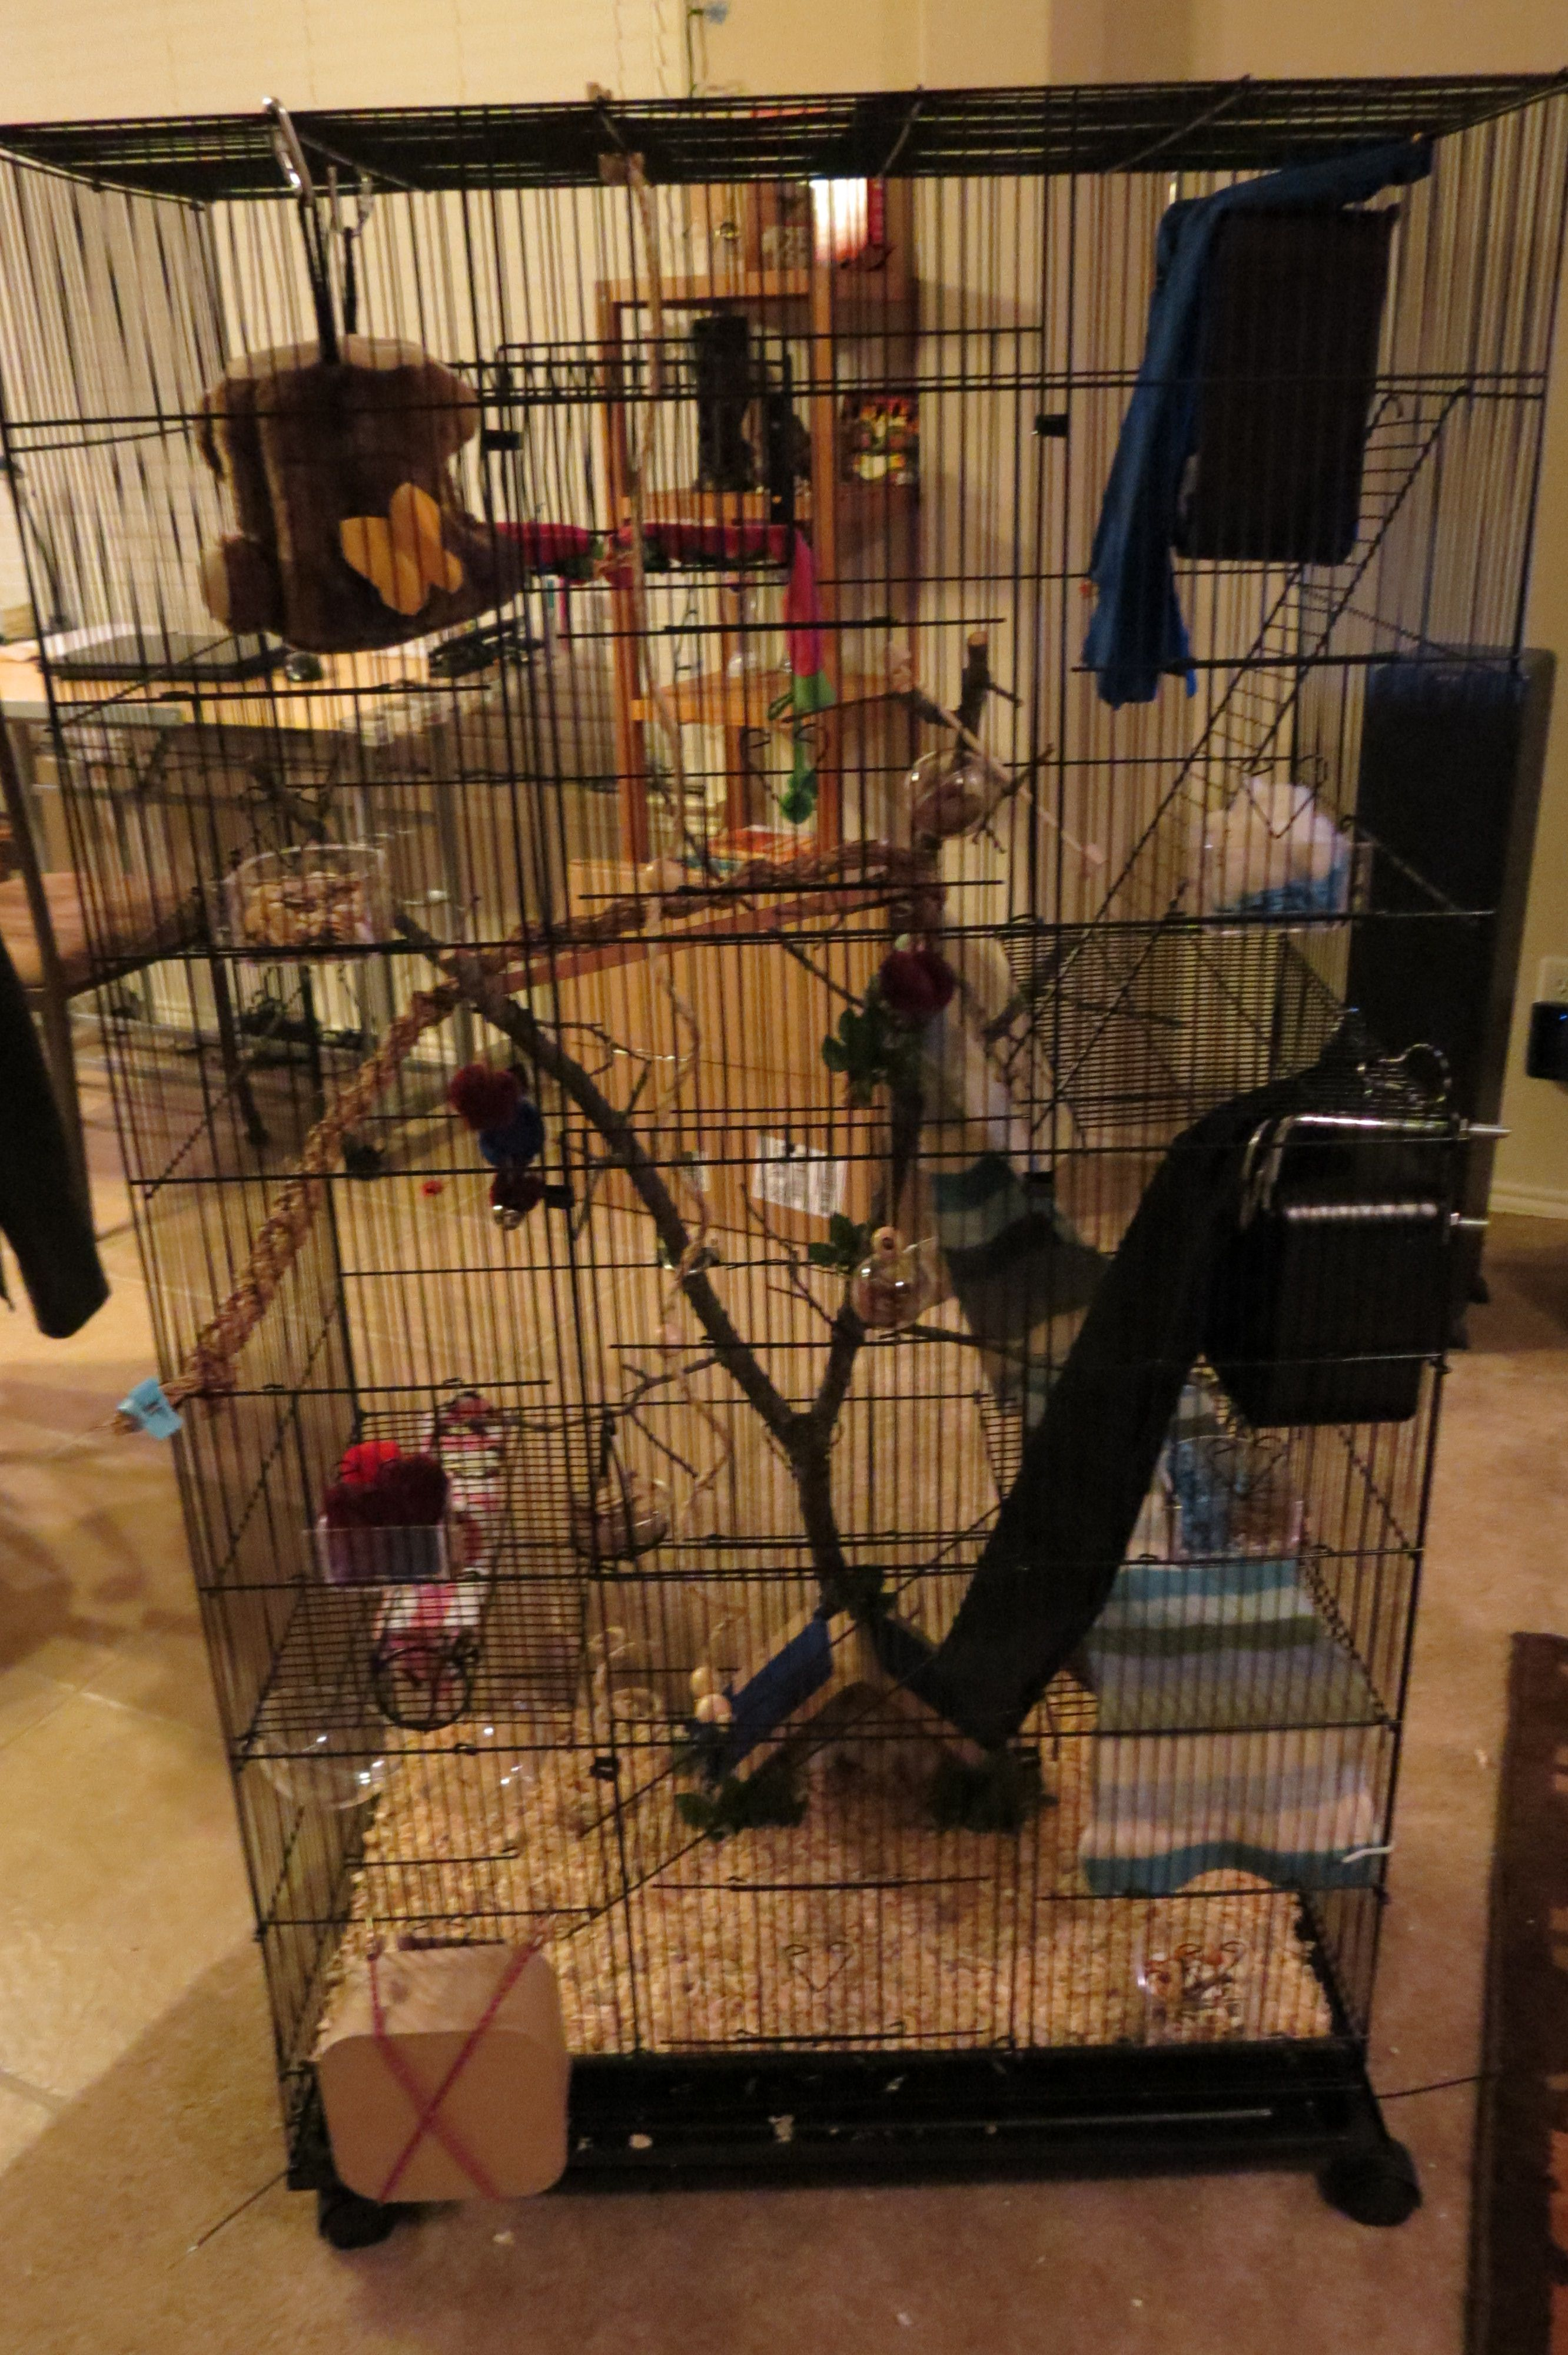 Flying Squirrel Cage Pimped Out Flying Squirrel Pet Squirrel Cage Baby Flying Squirrel